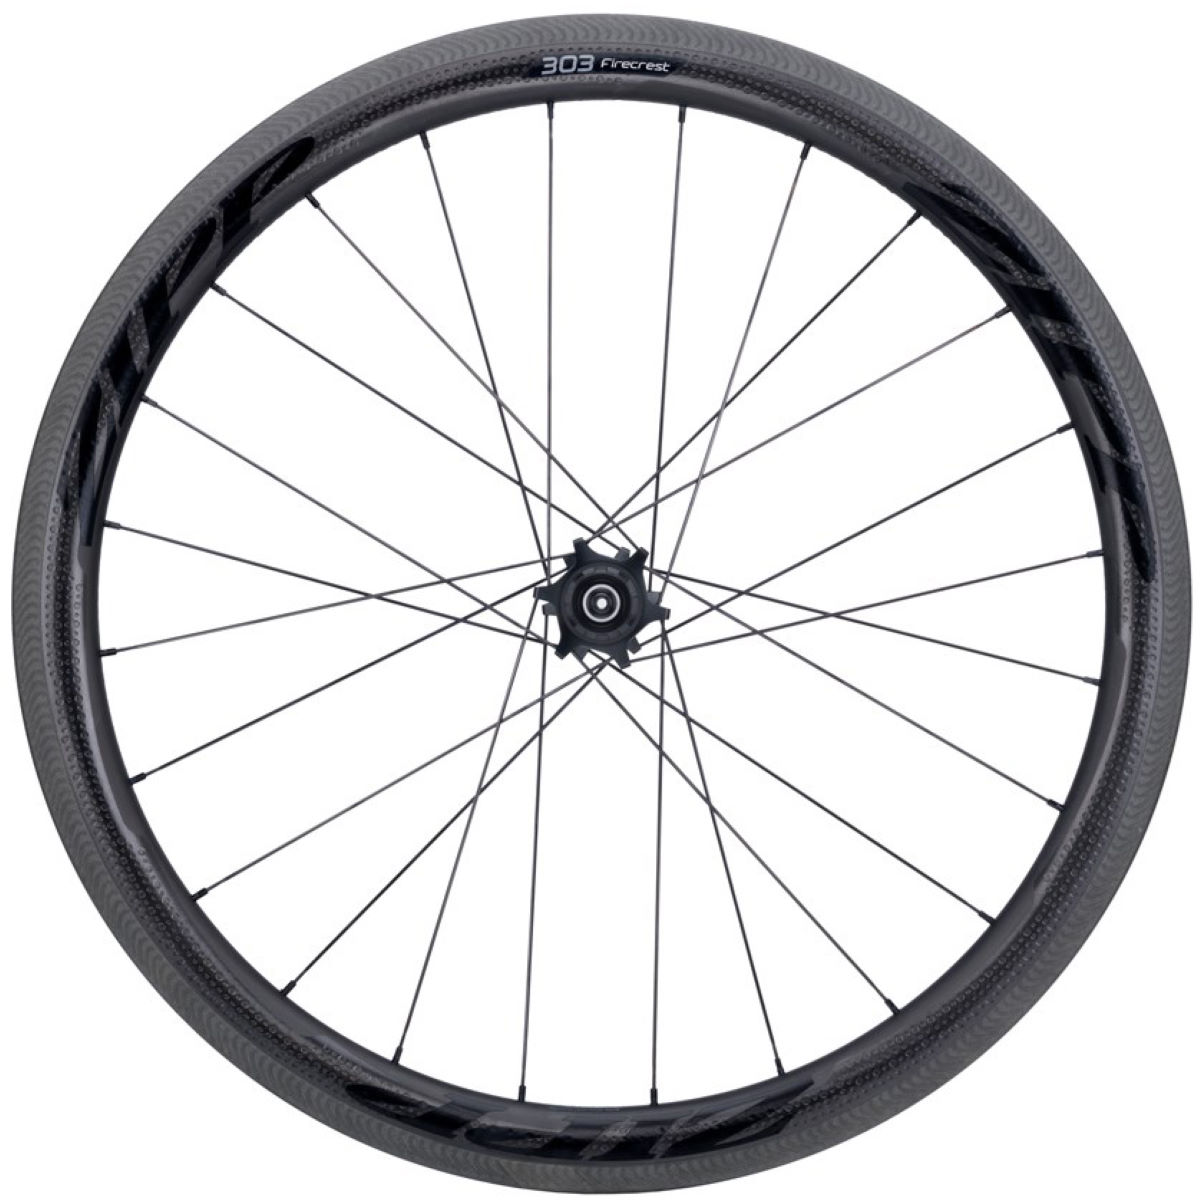 Zipp 303 Carbon Clincher QR Rear Wheel   Performance Wheels